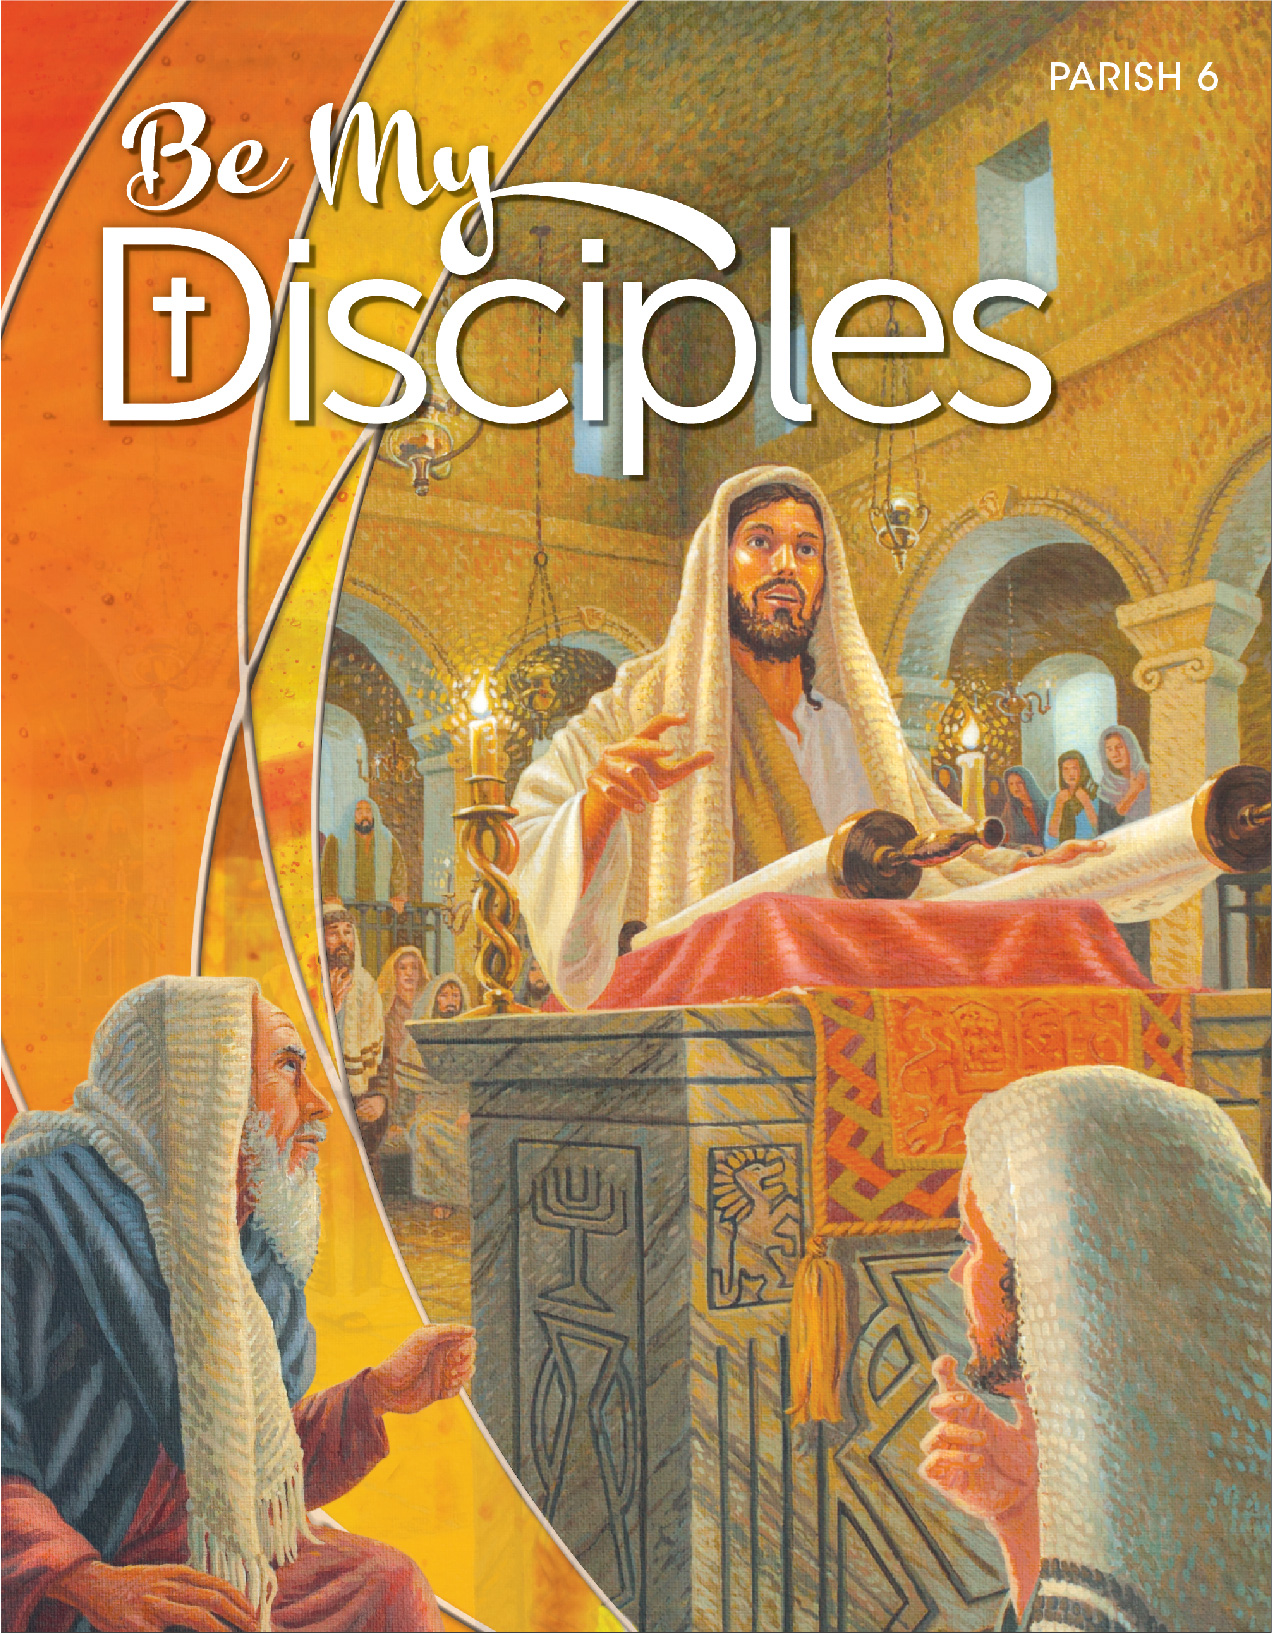 Book cover of Be My Disciples with Jesus preaching at an altar